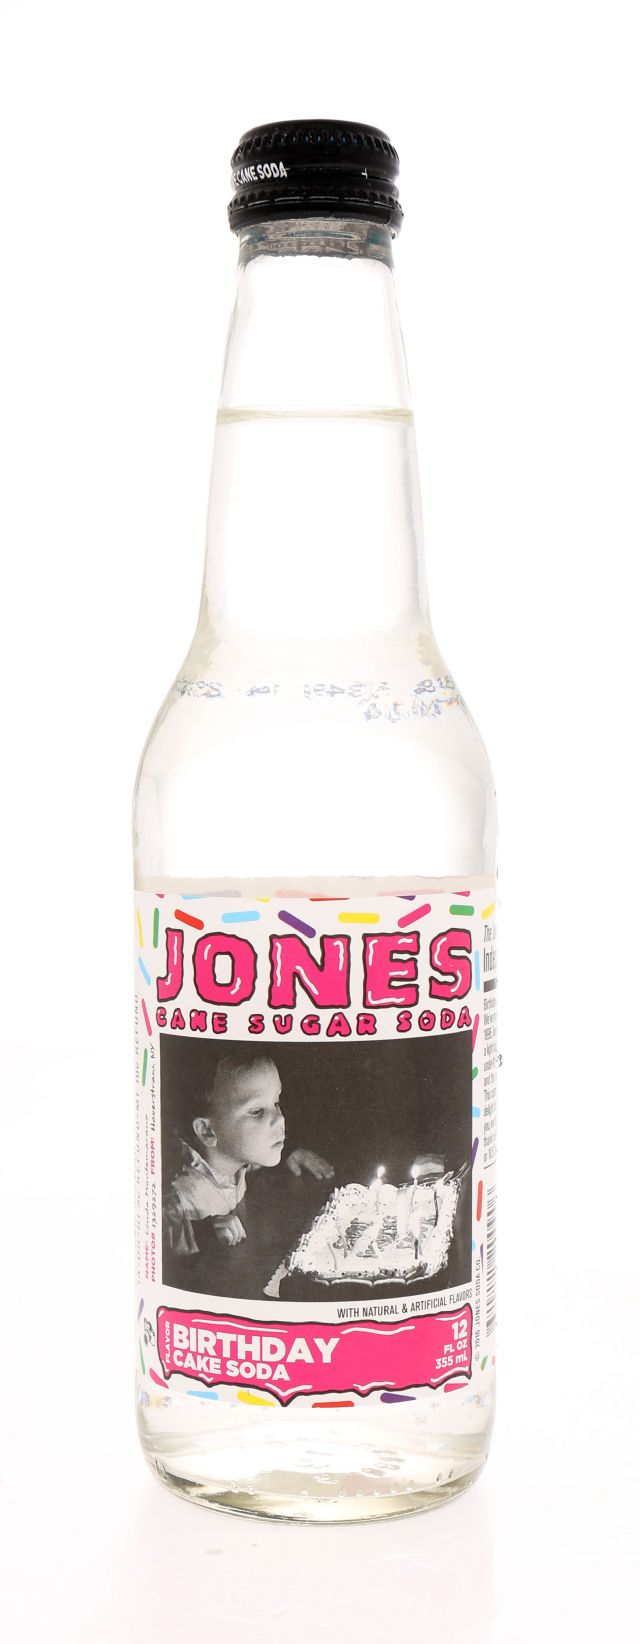 Jones Pure Cane Soda: Jones Front